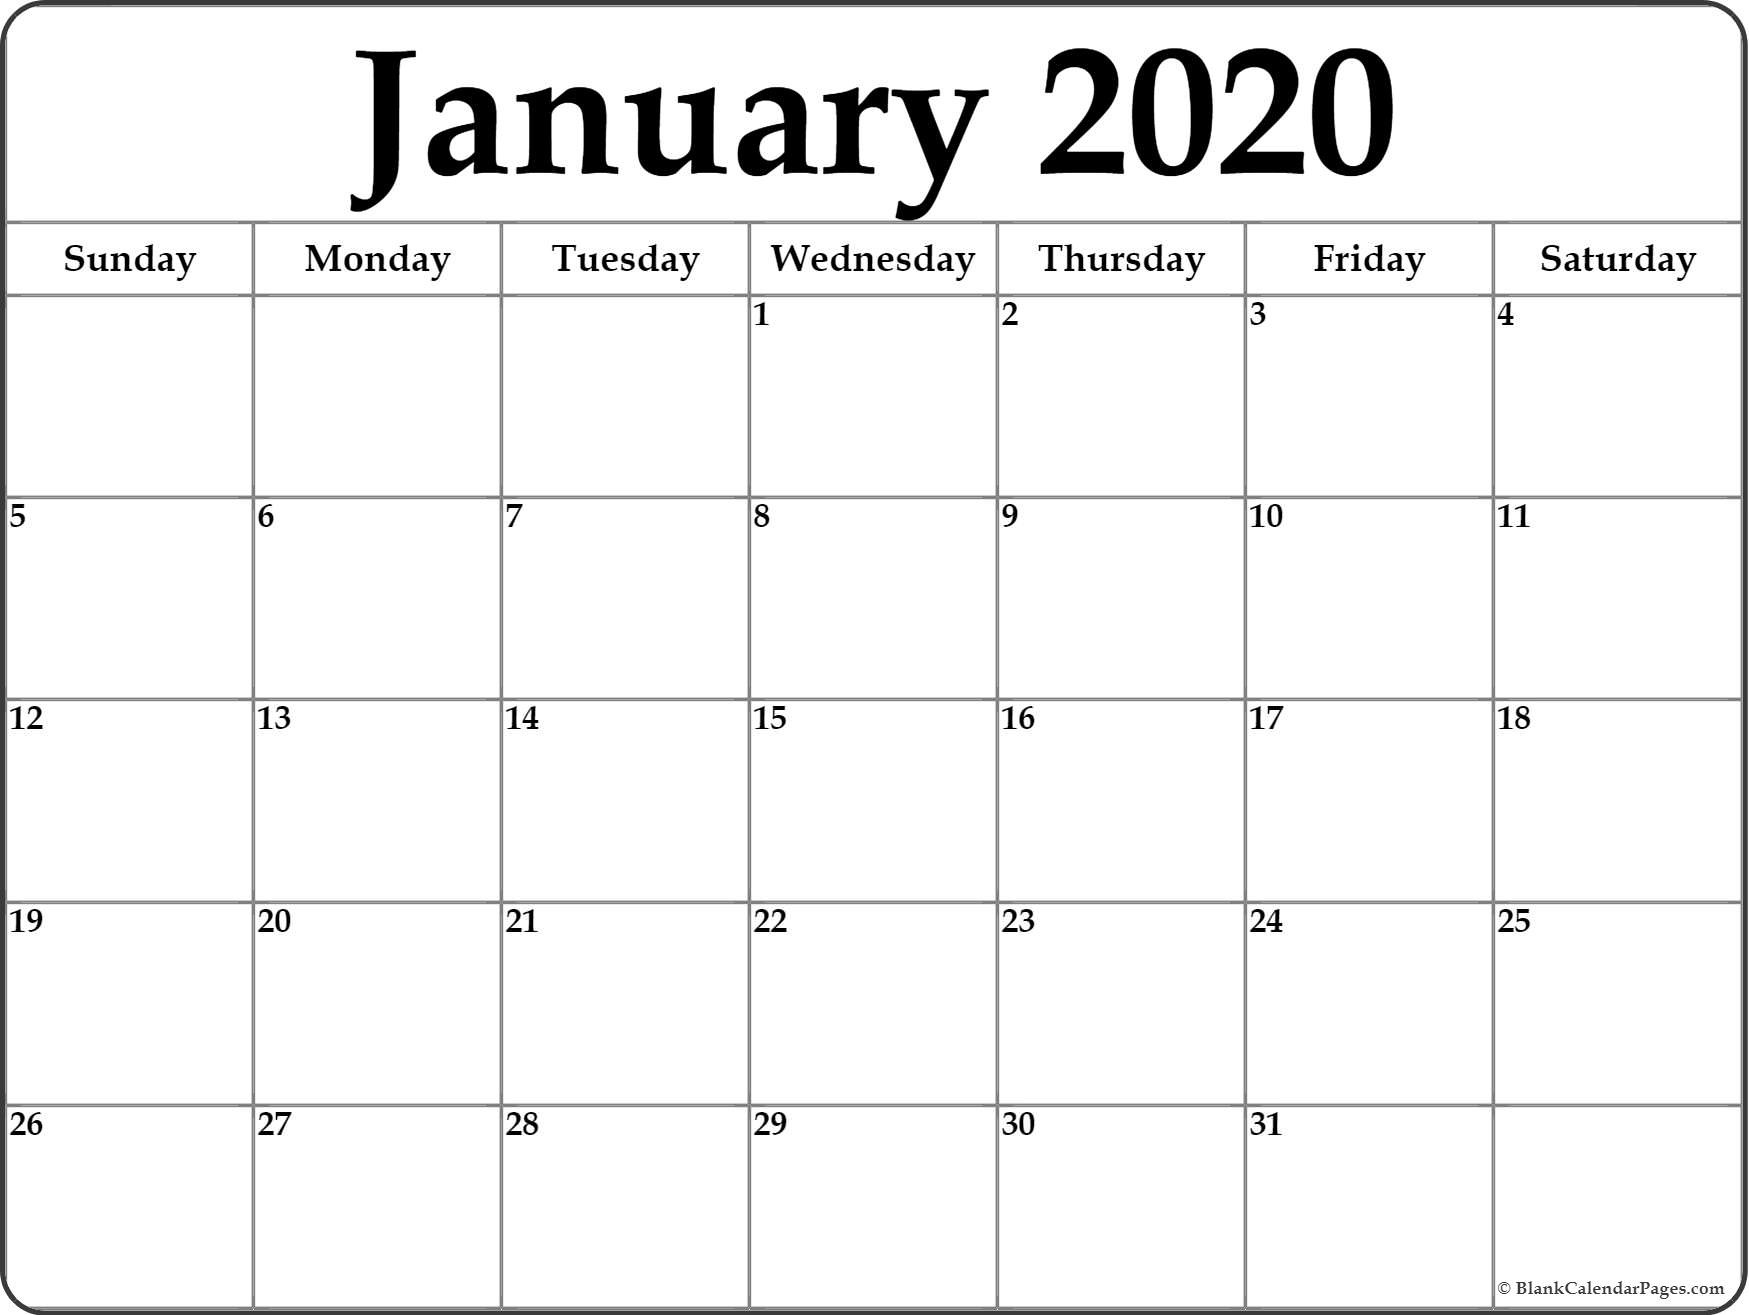 January 2020 Calendar | Free Printable Monthly Calendars-Blank Calendar 2020 Printable Monthly Payday Bills And Due Date